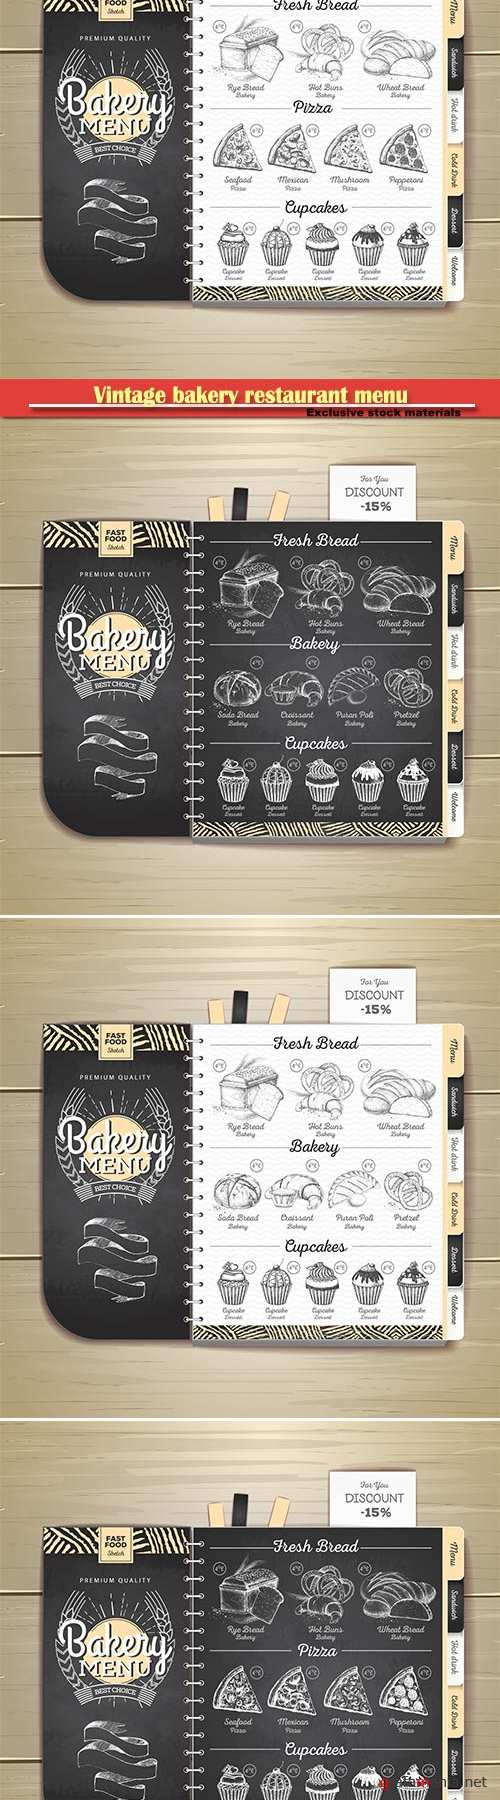 Vintage chalk drawing bakery restaurant menu design  vector illustration